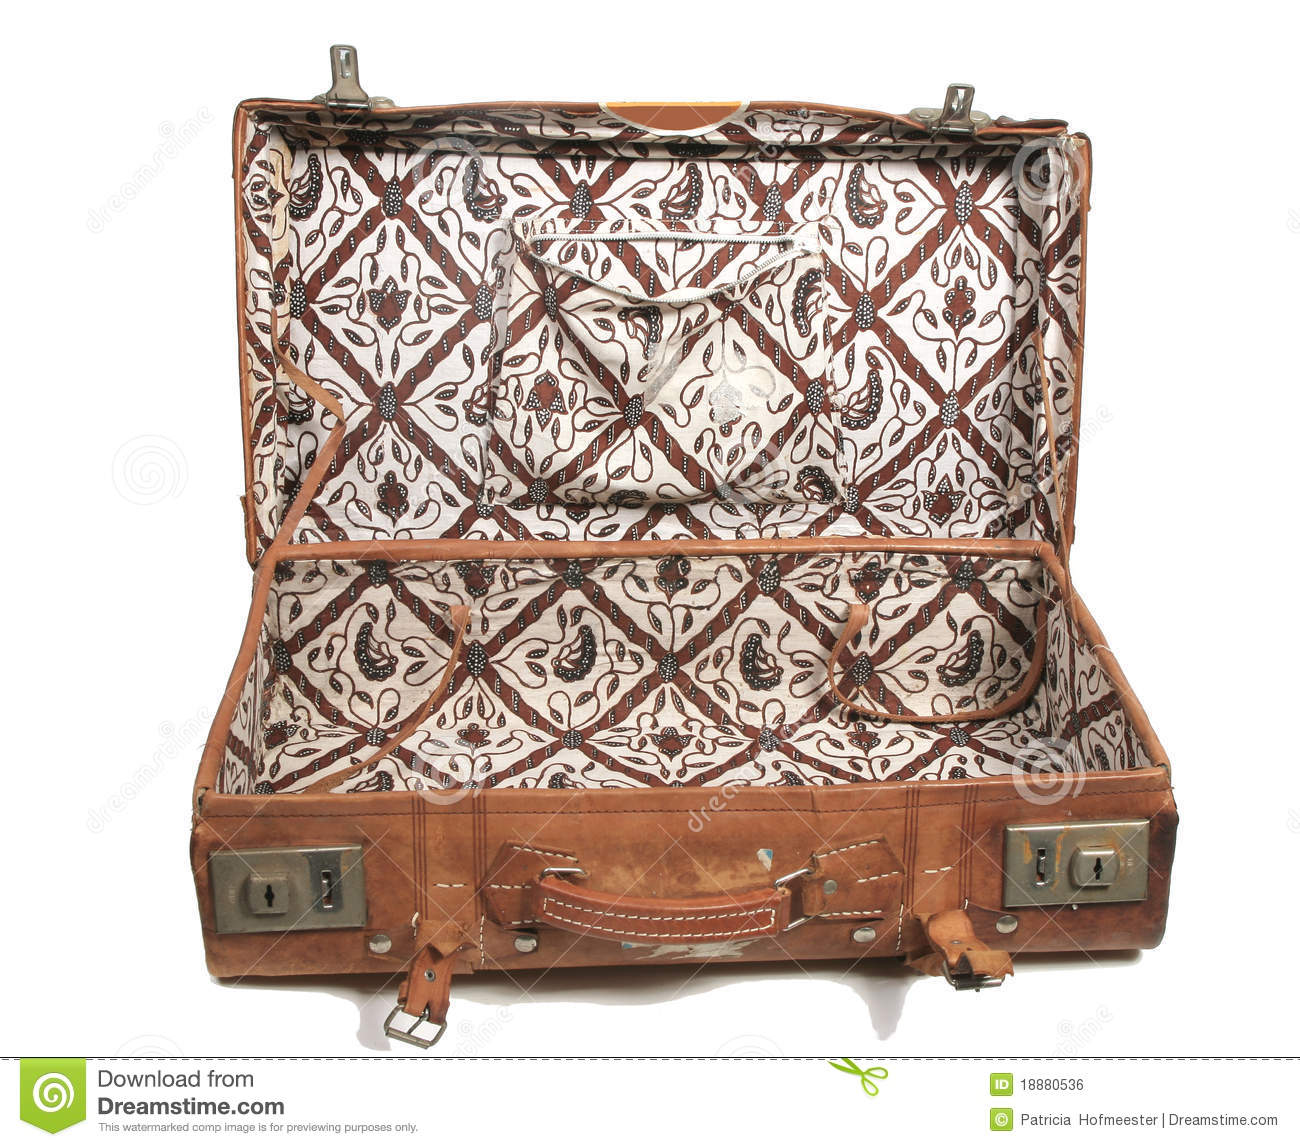 Old Leather Suitcase Royalty Free Stock Image - Image: 18880536